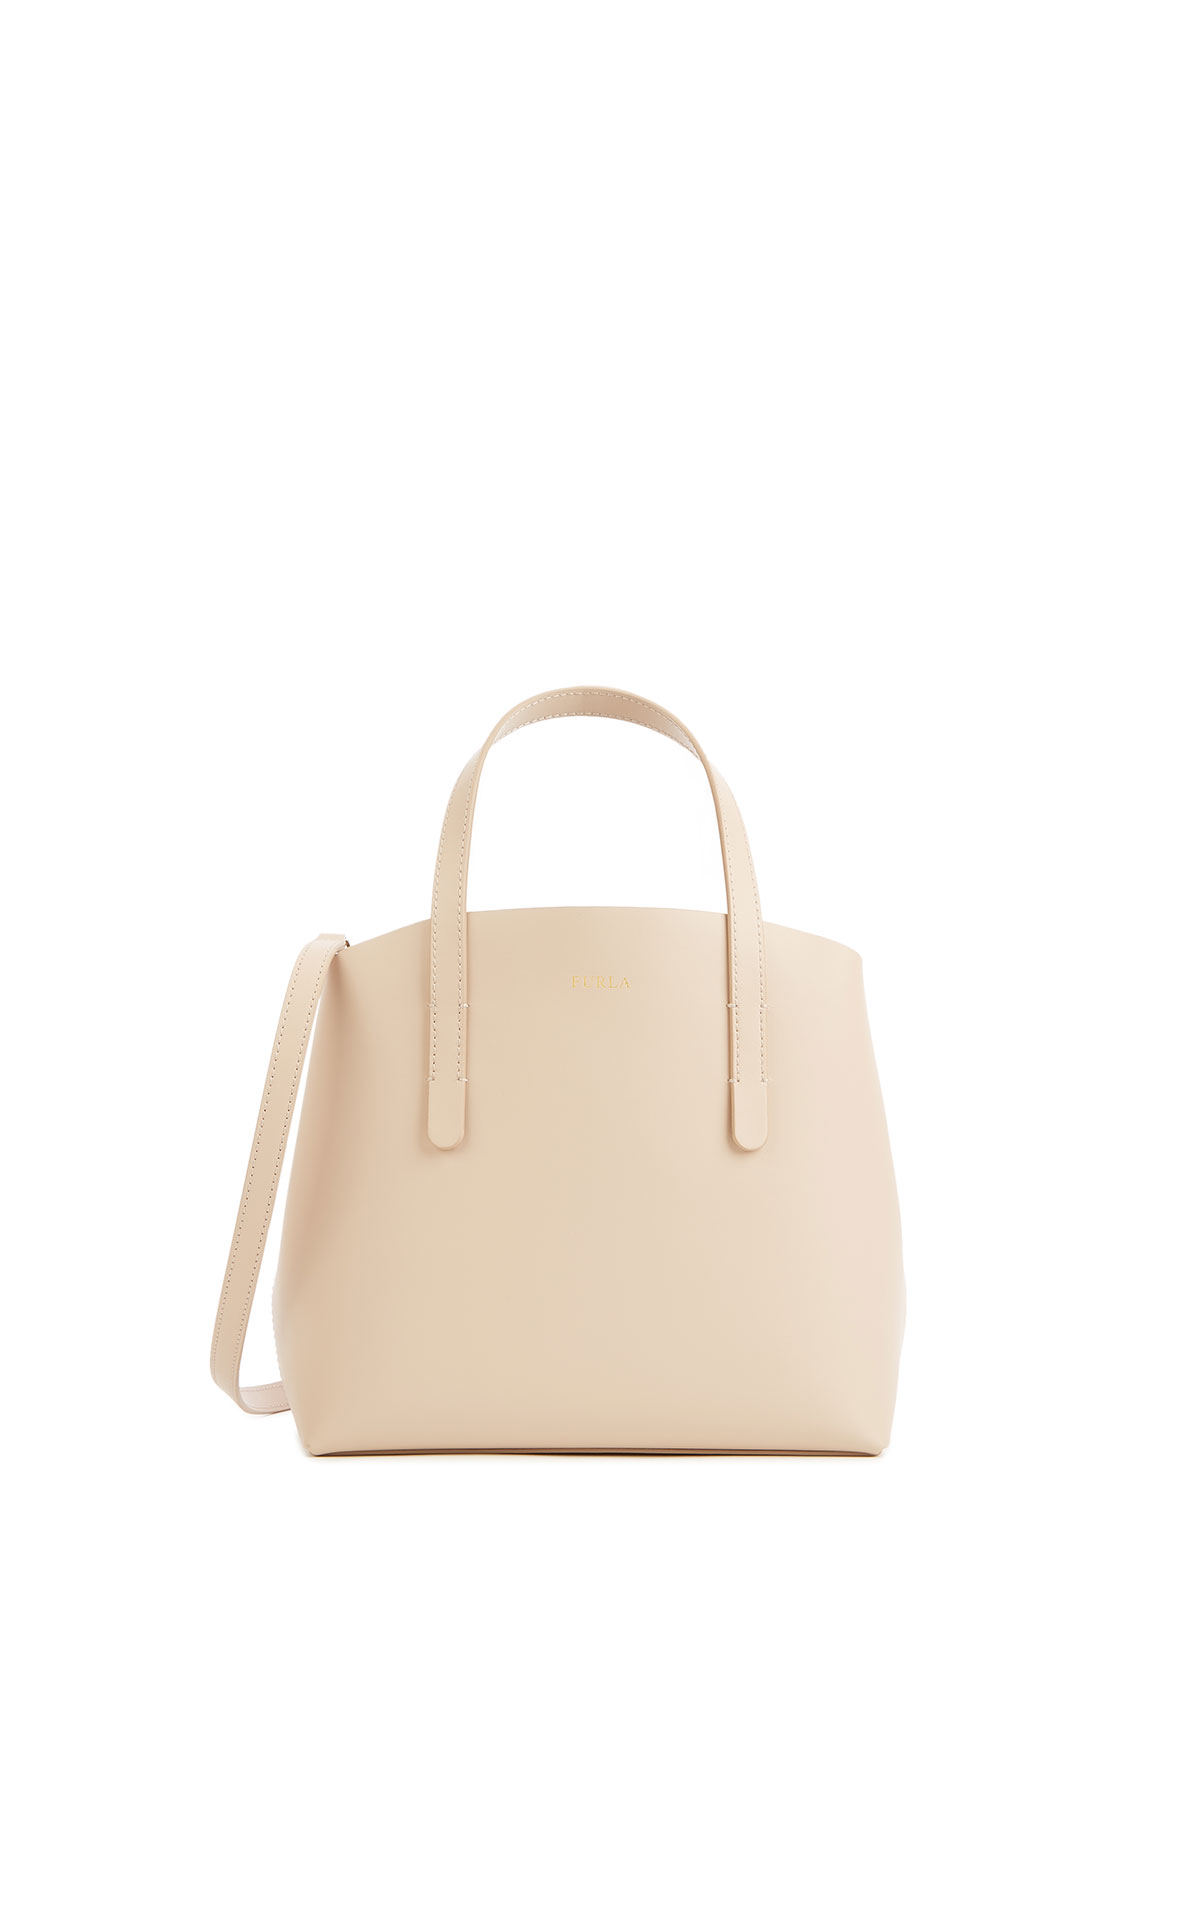 Furla's paradise small tote at the Bicester Village Shopping Collection